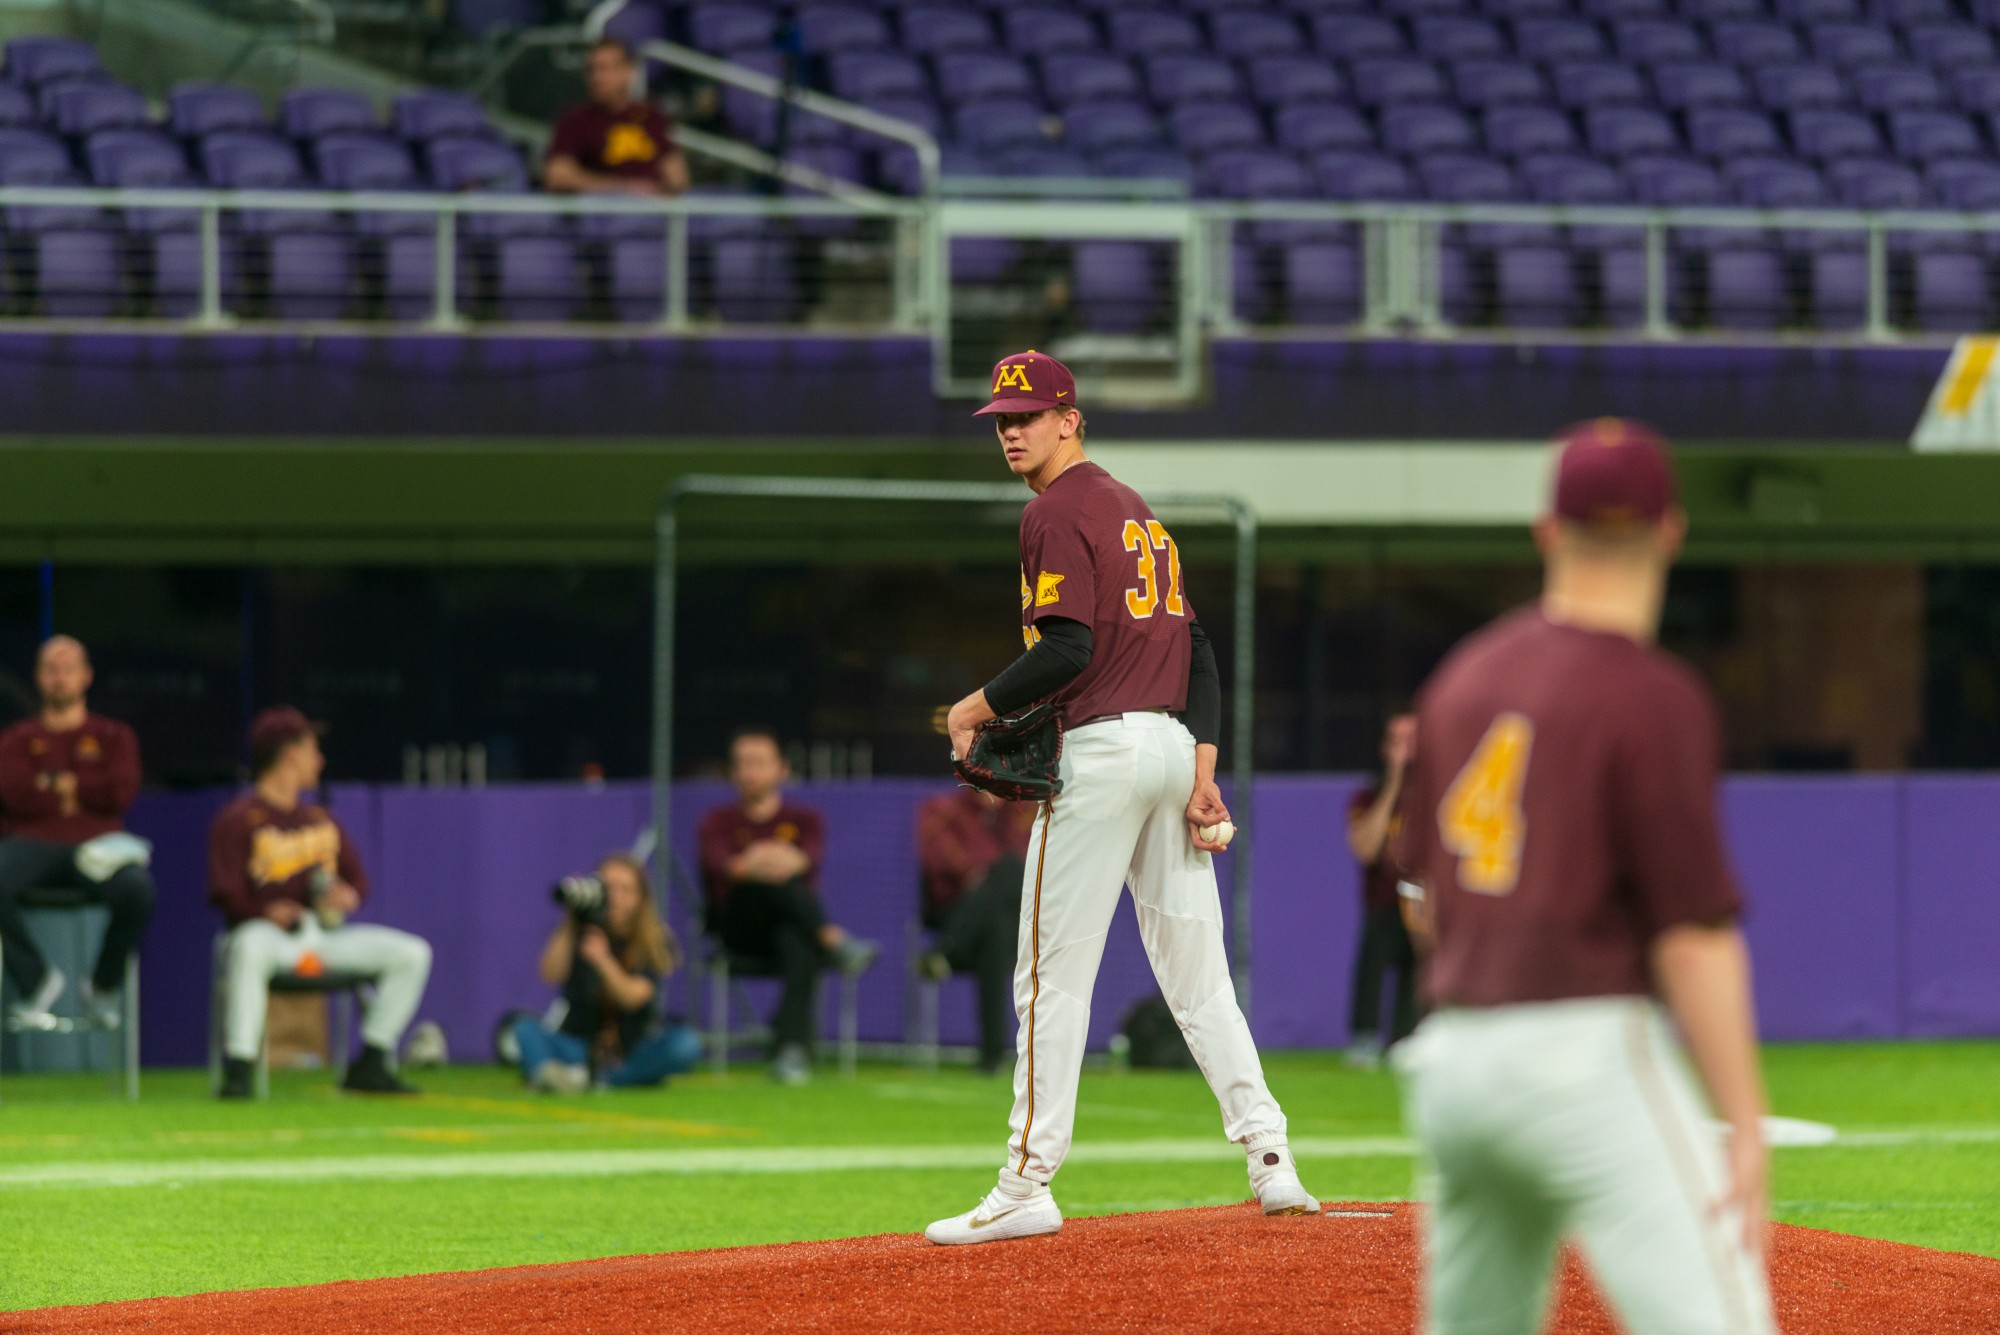 Gophers Pitcher Trent Schoeberl scans the field at U.S. Bank Stadium on Tuesday, March 3.